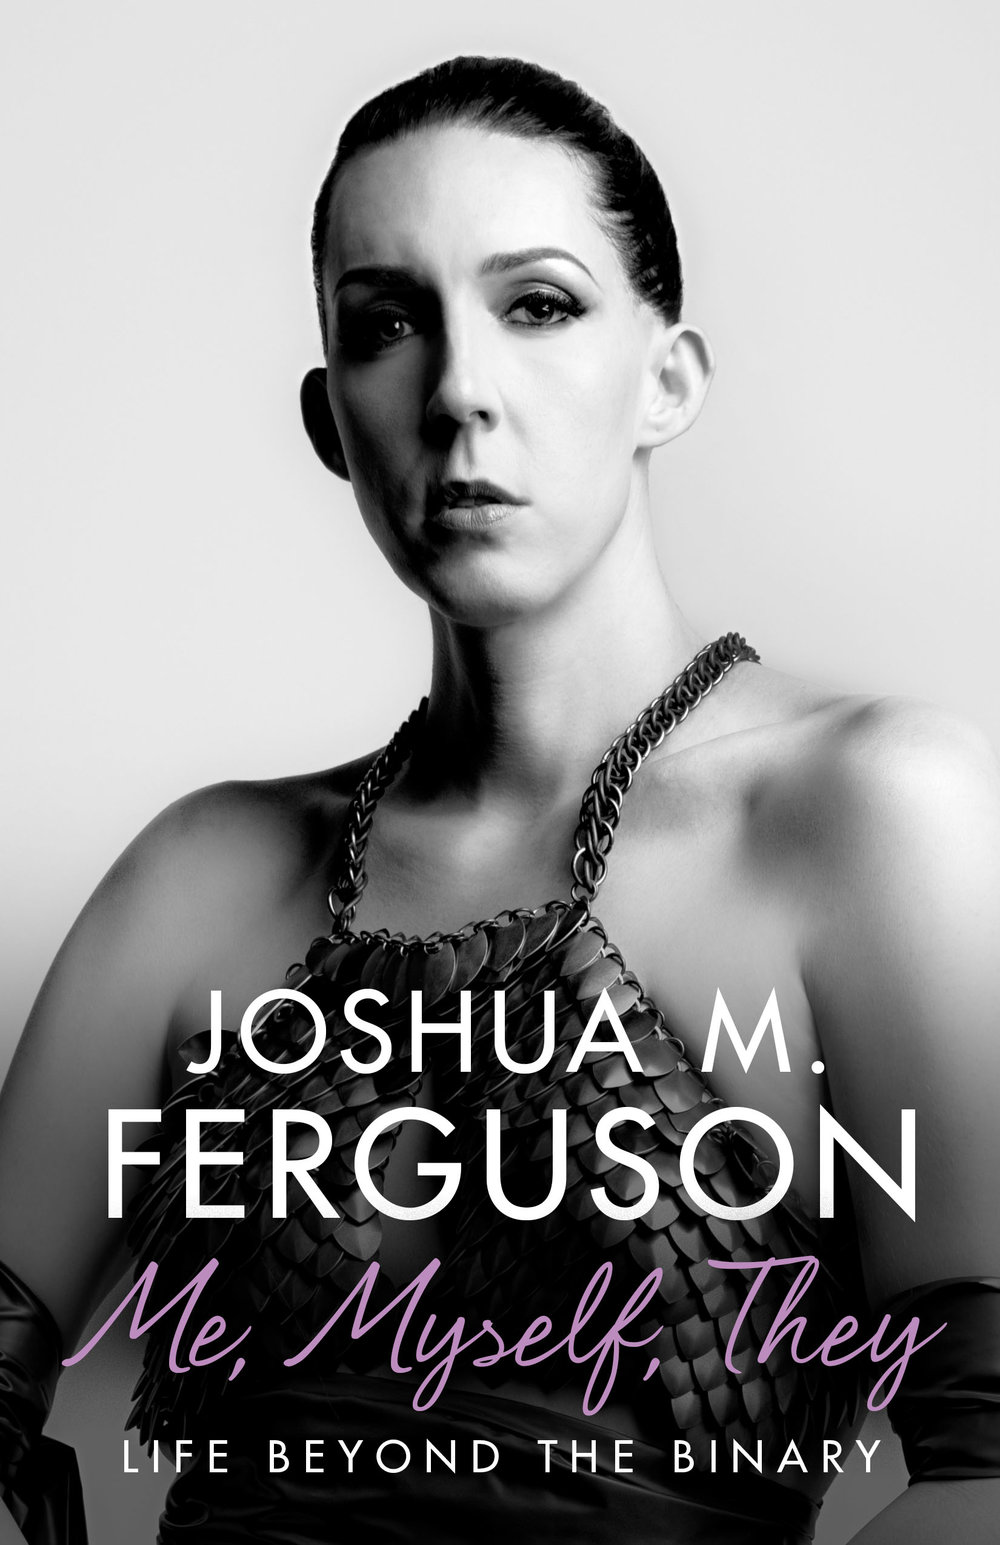 """Me, Myself, They will be released on May 7, 2019 with House of Anansi. - You can now pre-order Me, Myself, They on Indigo, Amazon, Barnes & Noble or from your favourite local bookstore.""""Raw, extraordinary, and profoundly moving . . . Joshua's memoir rocked me to the core . . . It is truly inspiring to hear the story of an individual so untethered in the expression of their authentic self.""""           - Jazz Jennings""""The world is broken and we need to learn to love each other without limits. Me, Myself, They is a revelation of beauty and compassion for the human soul."""" - Andie MacDowell""""A rousing call for empathy and care. It asks us to widen the terrain of gender and, in so doing, to fashion a new world. This is some of the most important work of our time, and Joshua's memoir is a beacon!""""                   - Billy-Ray Belcourt, author of This Wound is a WorldMe, Myself, They: Life Beyond the Binary chronicles Joshua M. Ferguson's extraordinary story of transformation to become the celebrated non-binary filmmaker, writer, and advocate for trans rights they are today. Beginning with their birth and early childhood years of gender creativity, Ferguson recounts the complex and often challenging evolution of their identity, including traumatizing experiences with gender conversion therapy, bullying, depression, sexual assault, and violent physical assault. But Ferguson's story is above all about survival, empathy, and self-acceptance. By combining their personal reflections on what it feels like to never truly fit into the prescribed roles of girl or boy, woman or man, with an informed analysis of the ongoing shifts in contemporary attitudes towards sex and gender, Ferguson calls for recognition and respect for all trans, non-binary, and gender non-conforming people, and an inclusive understanding of the rich diversity of human identity. Through their honest and impassioned storytelling, we learn what it means to reclaim one's identity and to live beyond the binary."""